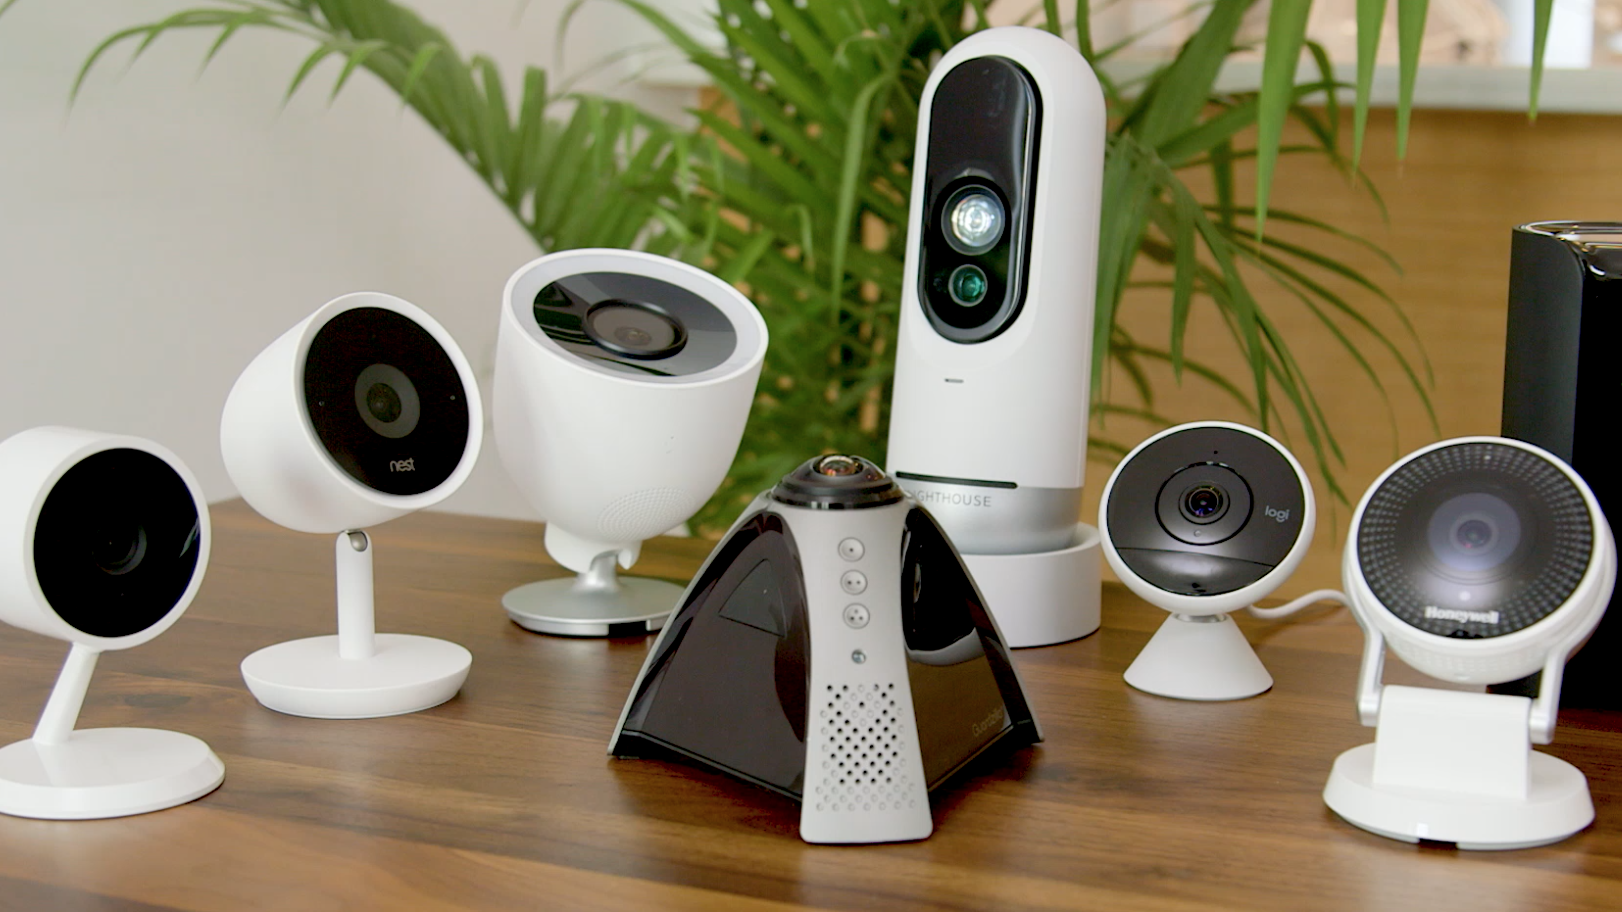 The Best Security Camera For Most People